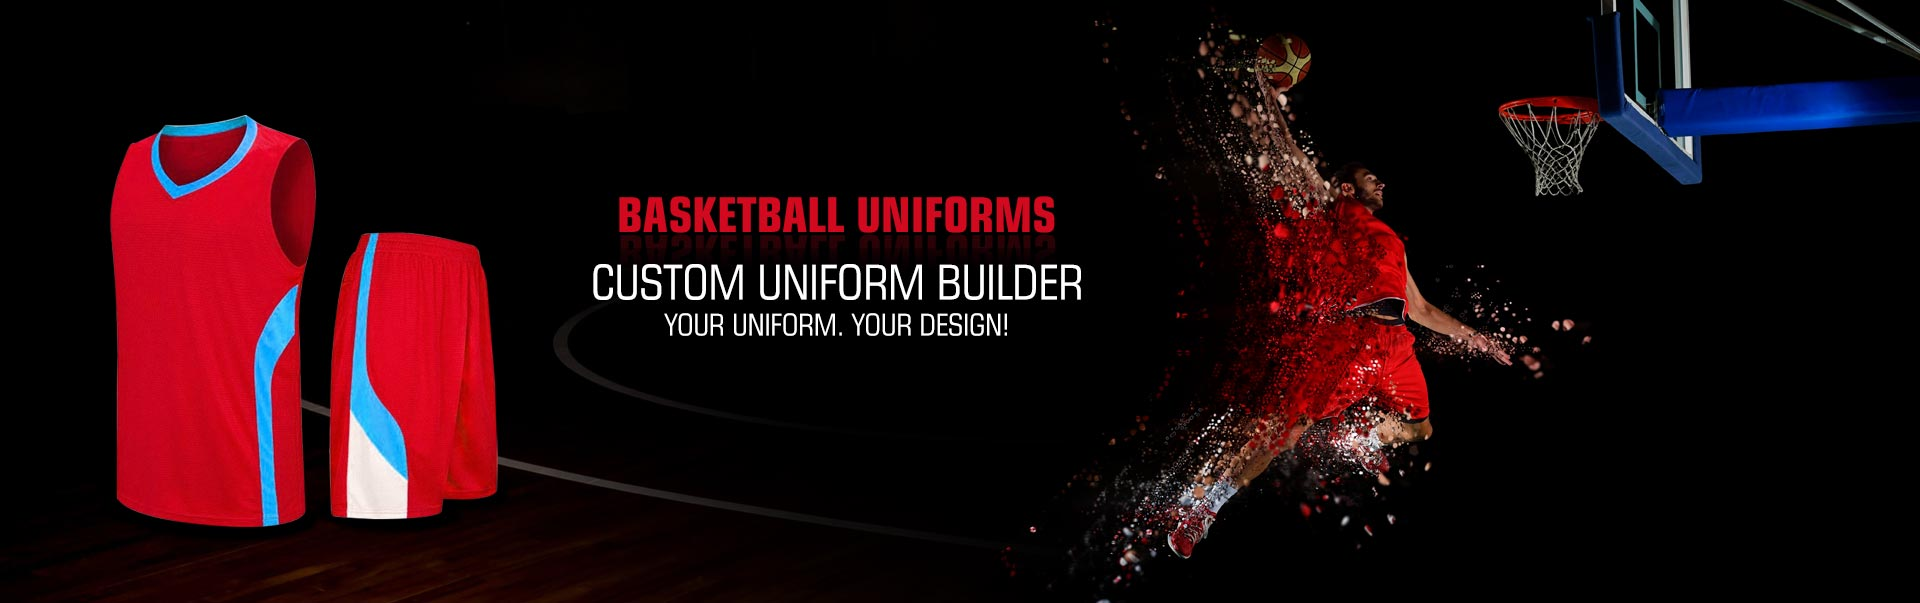 Basketball Uniforms Wholesaler, Suppliers in Nakhodka